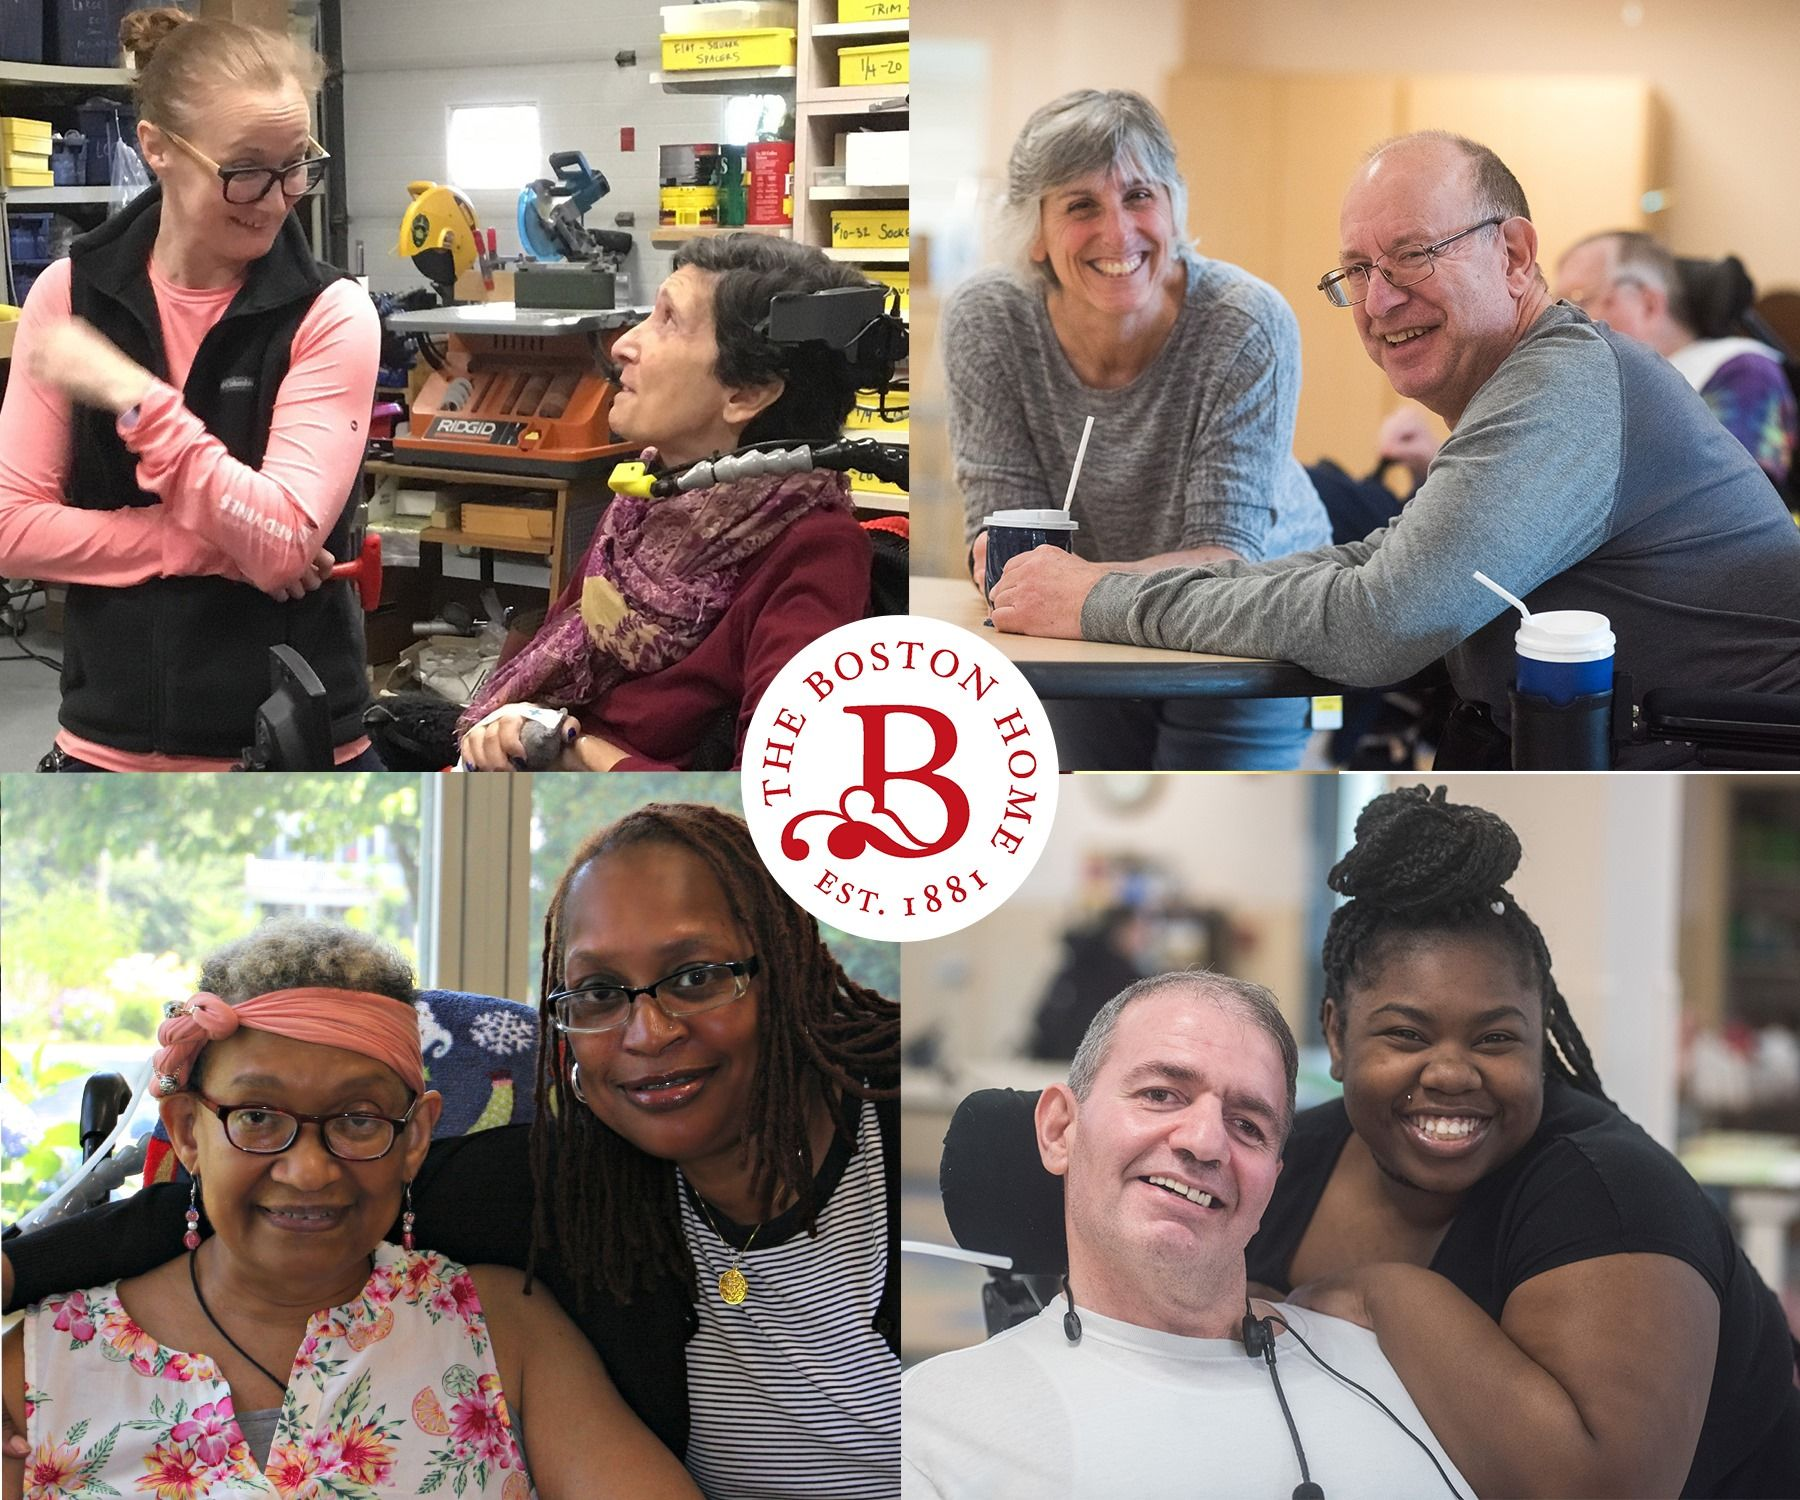 Thank You to our donors, partners, families, and volunteers who make The Boston Home a beautiful community of caring.